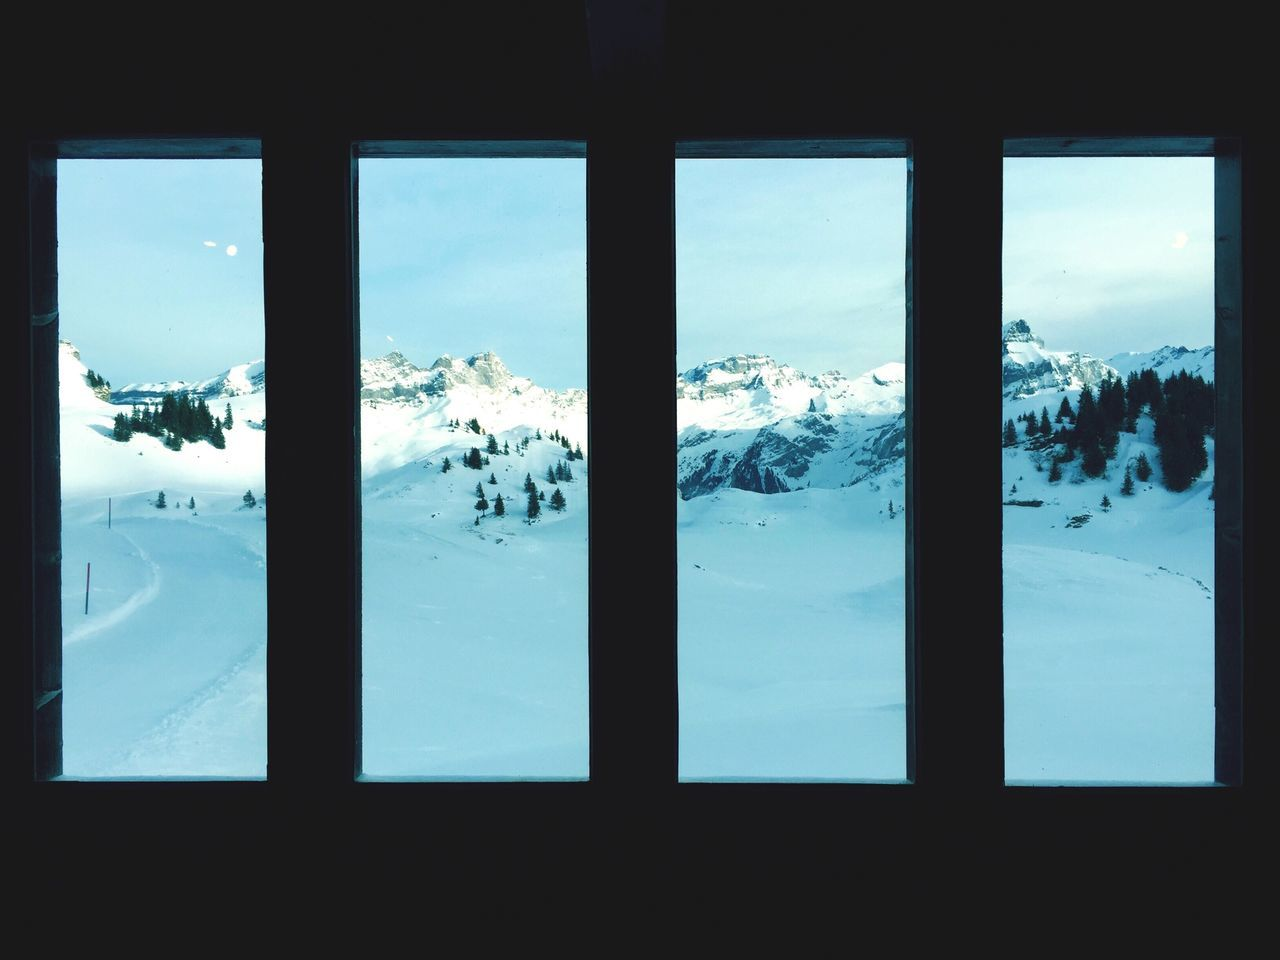 Snow Covered Landscape Against Sky Seen Through Window